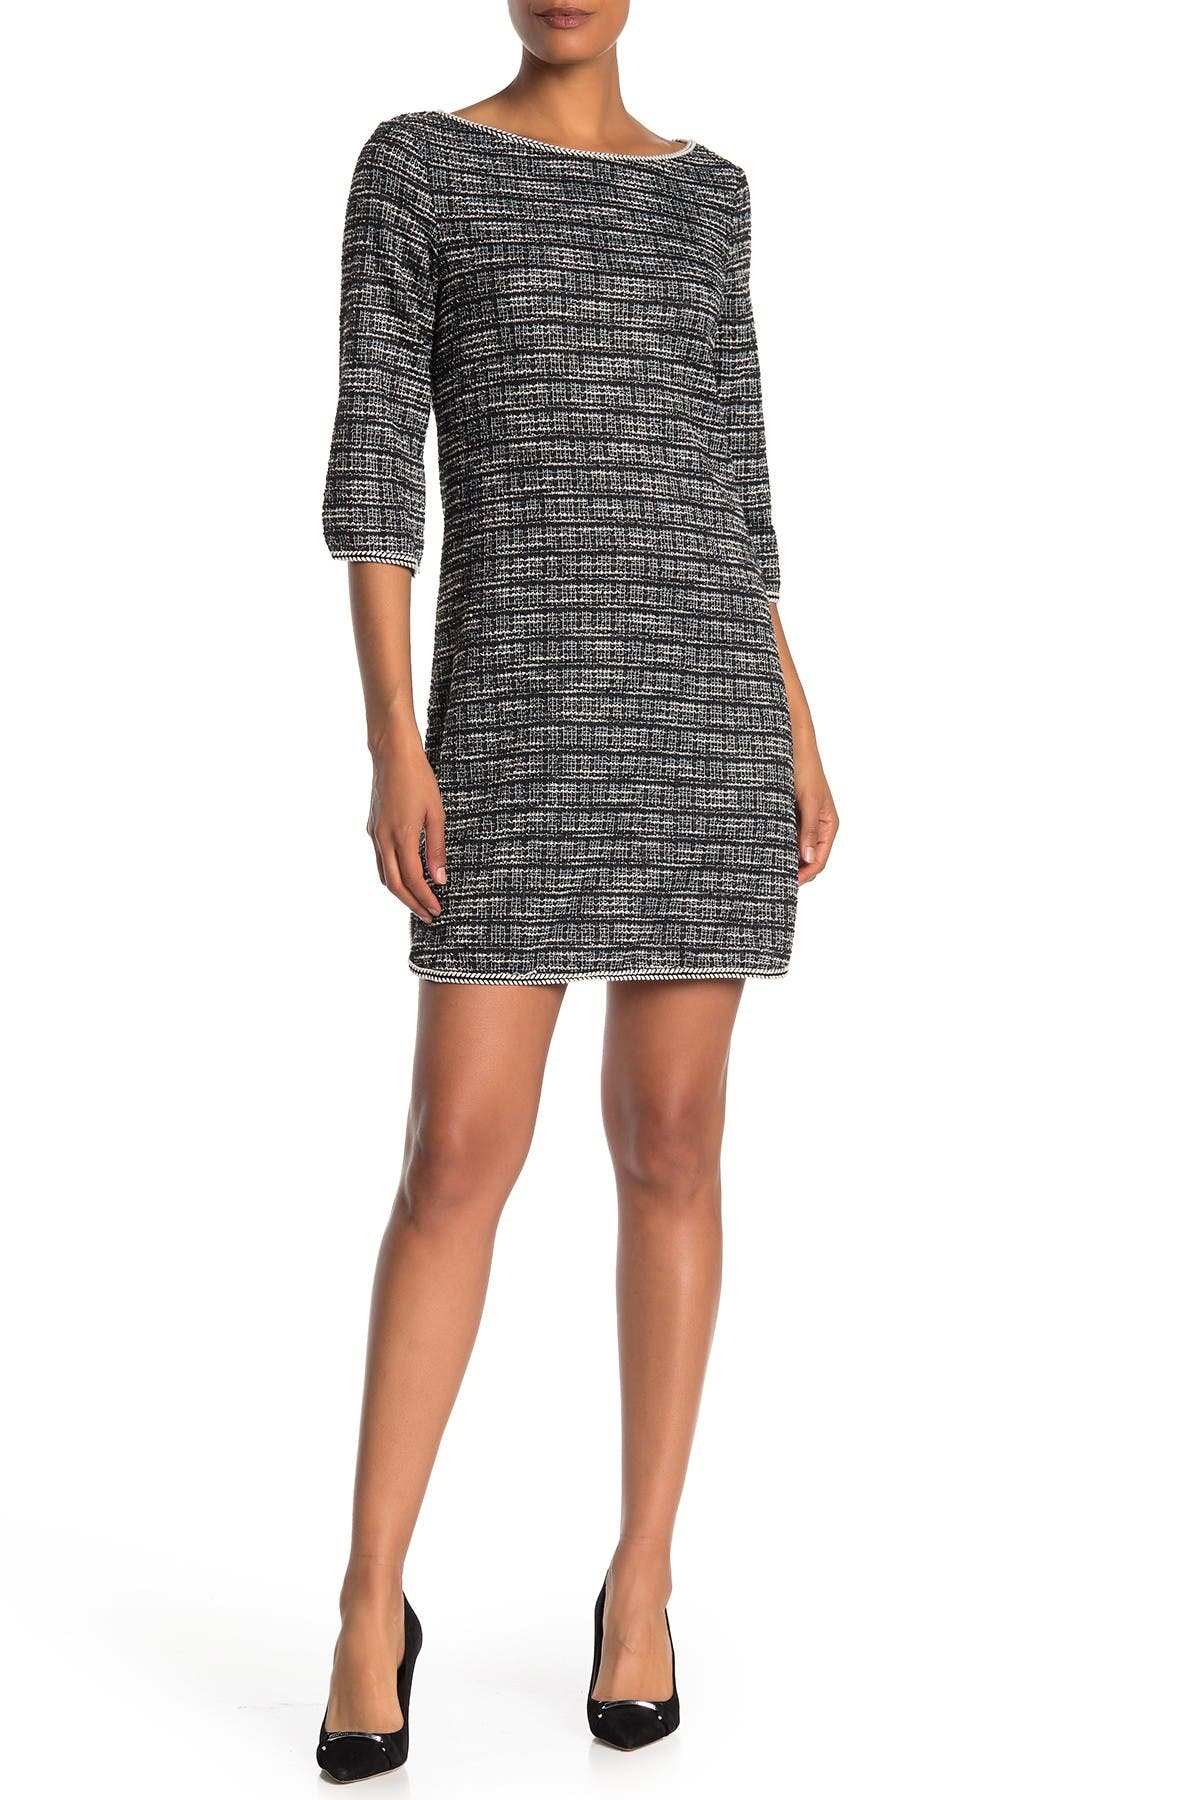 Image of Max Studio Tweed Knit Mini Dress